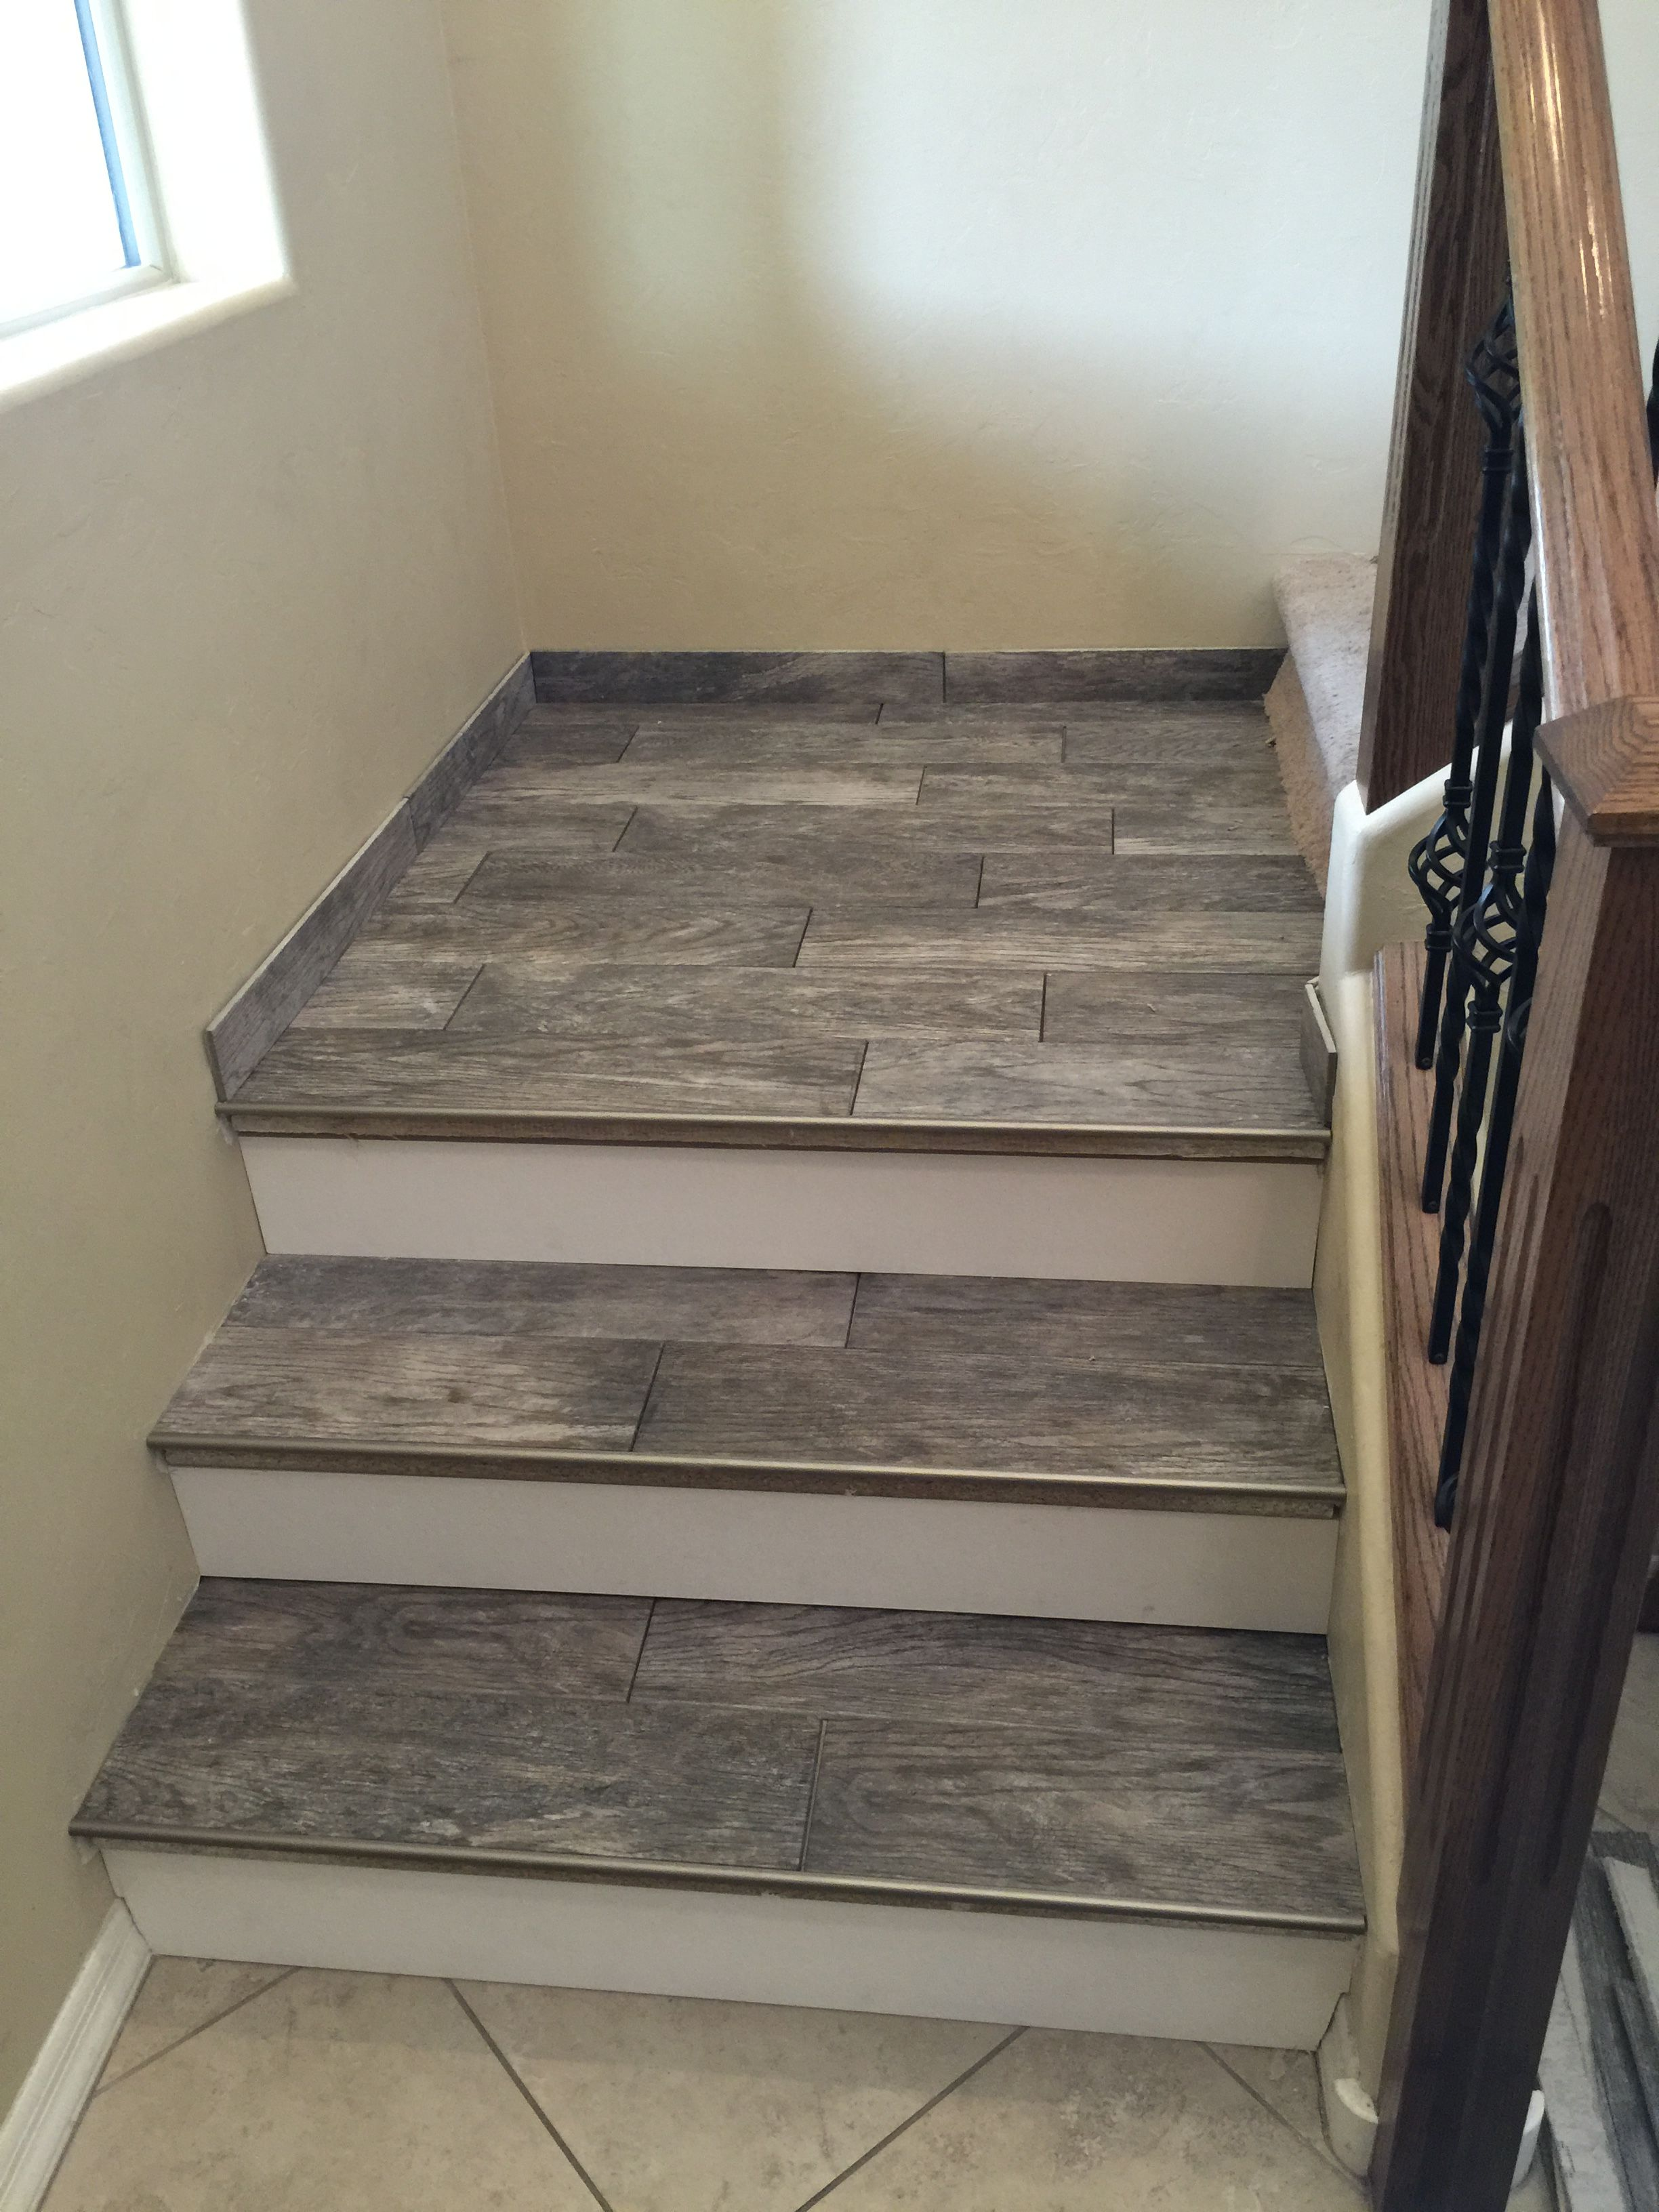 Porcelain Wood Look Tile Stairs Flooring For Stairs Diy | Wood Grain Tile On Stairs | Natural Wood | Contemporary | Basement | Upstairs | Subway Tile